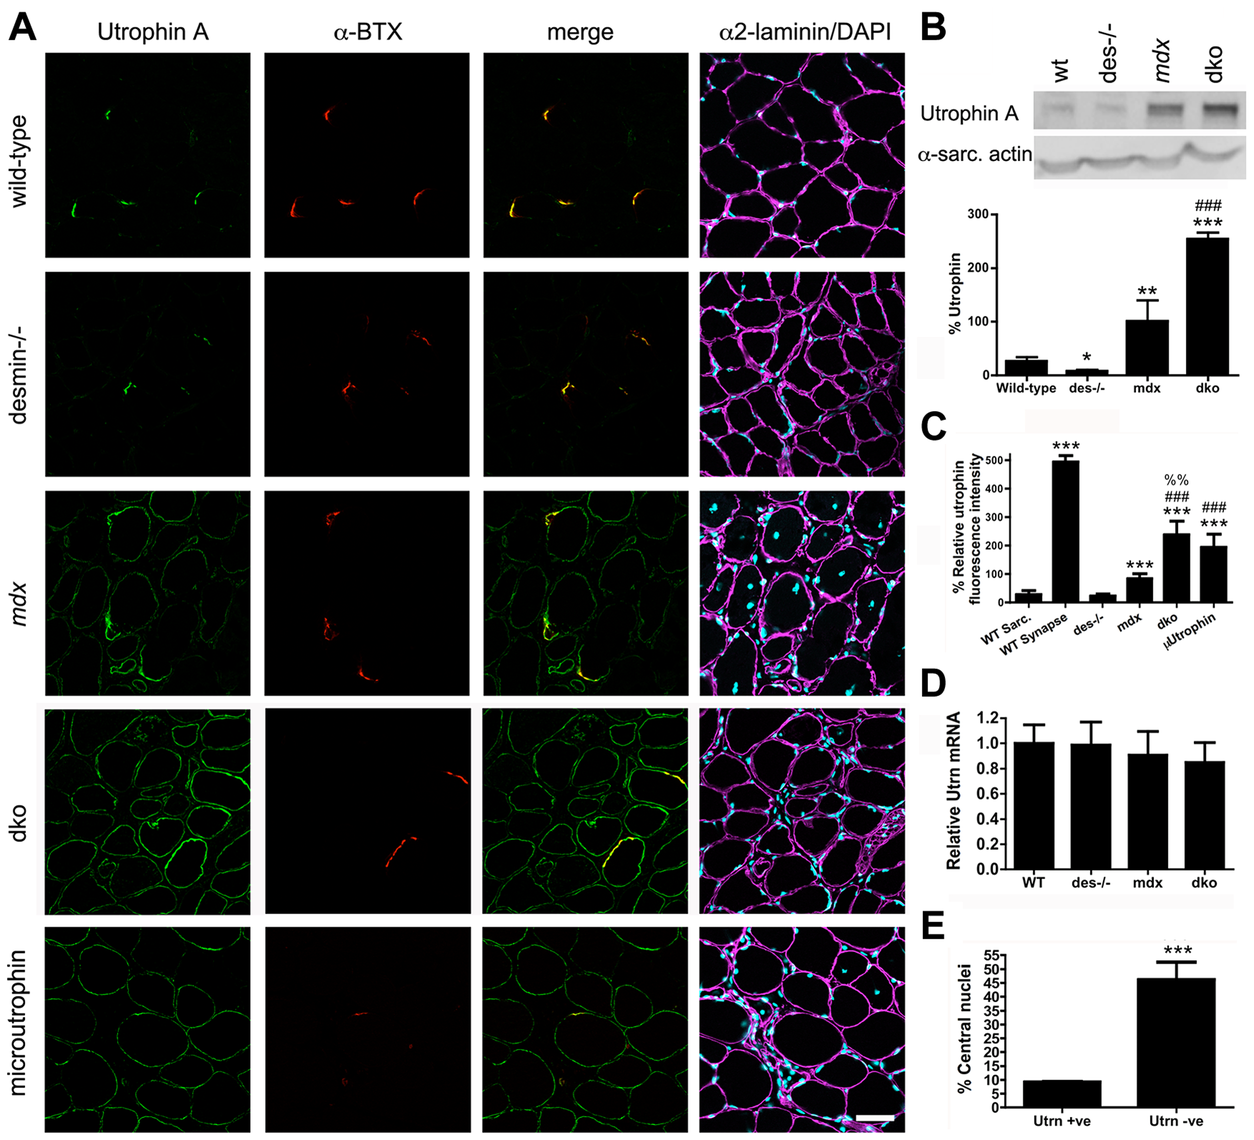 Expression and localization of utrophin in wild-type, desmin<sup>−/−</sup>, <i>mdx<sup>4cv</sup></i> and dko muscles at 11 weeks of age.